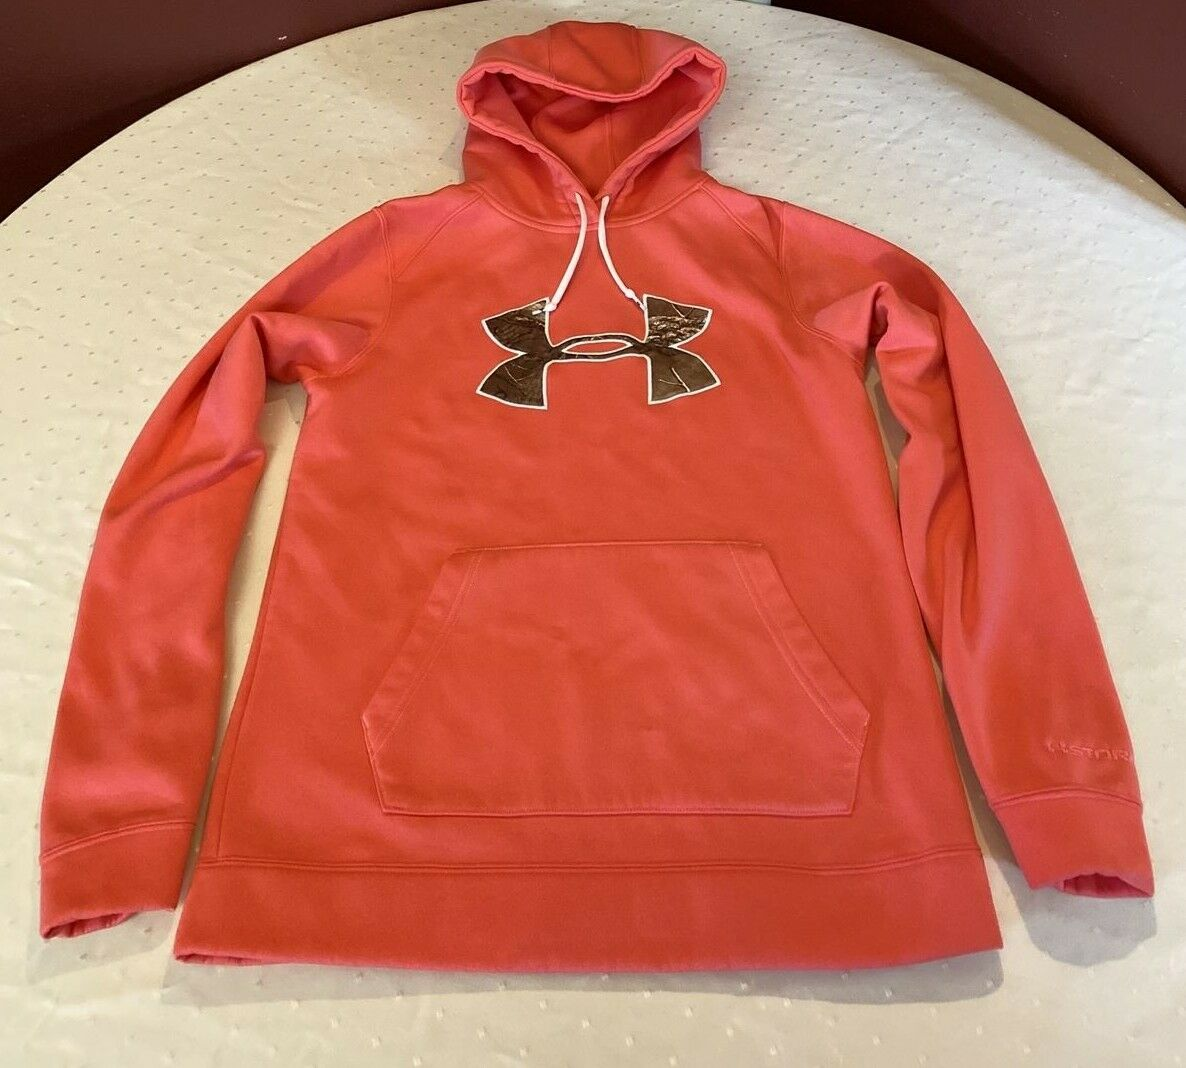 Under Armour women's semi fitted cold gear pullover hoodie size SM/P/P